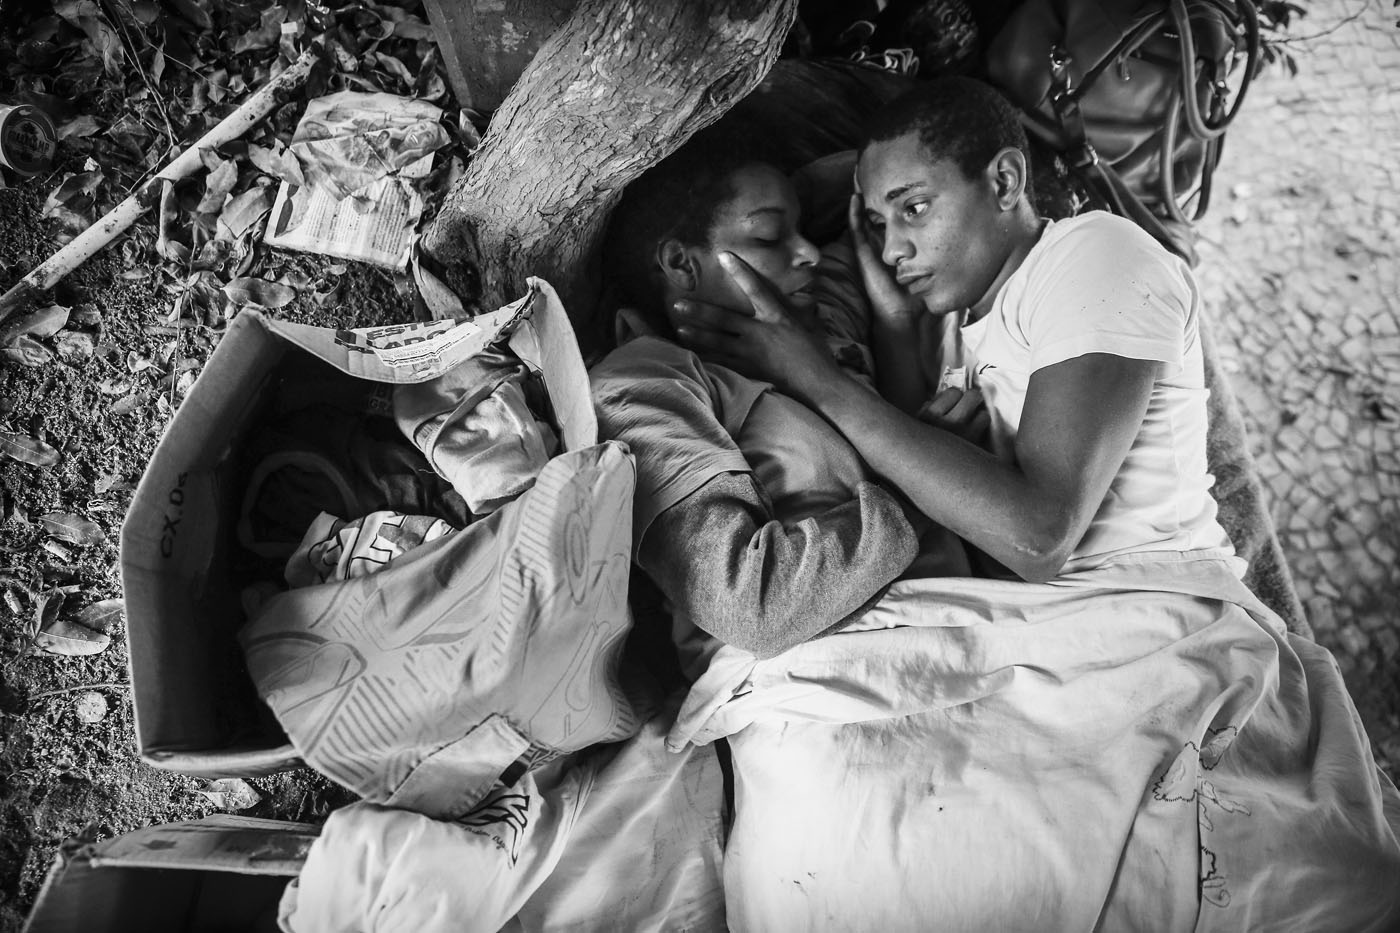 Portraits of the homeless in Rio